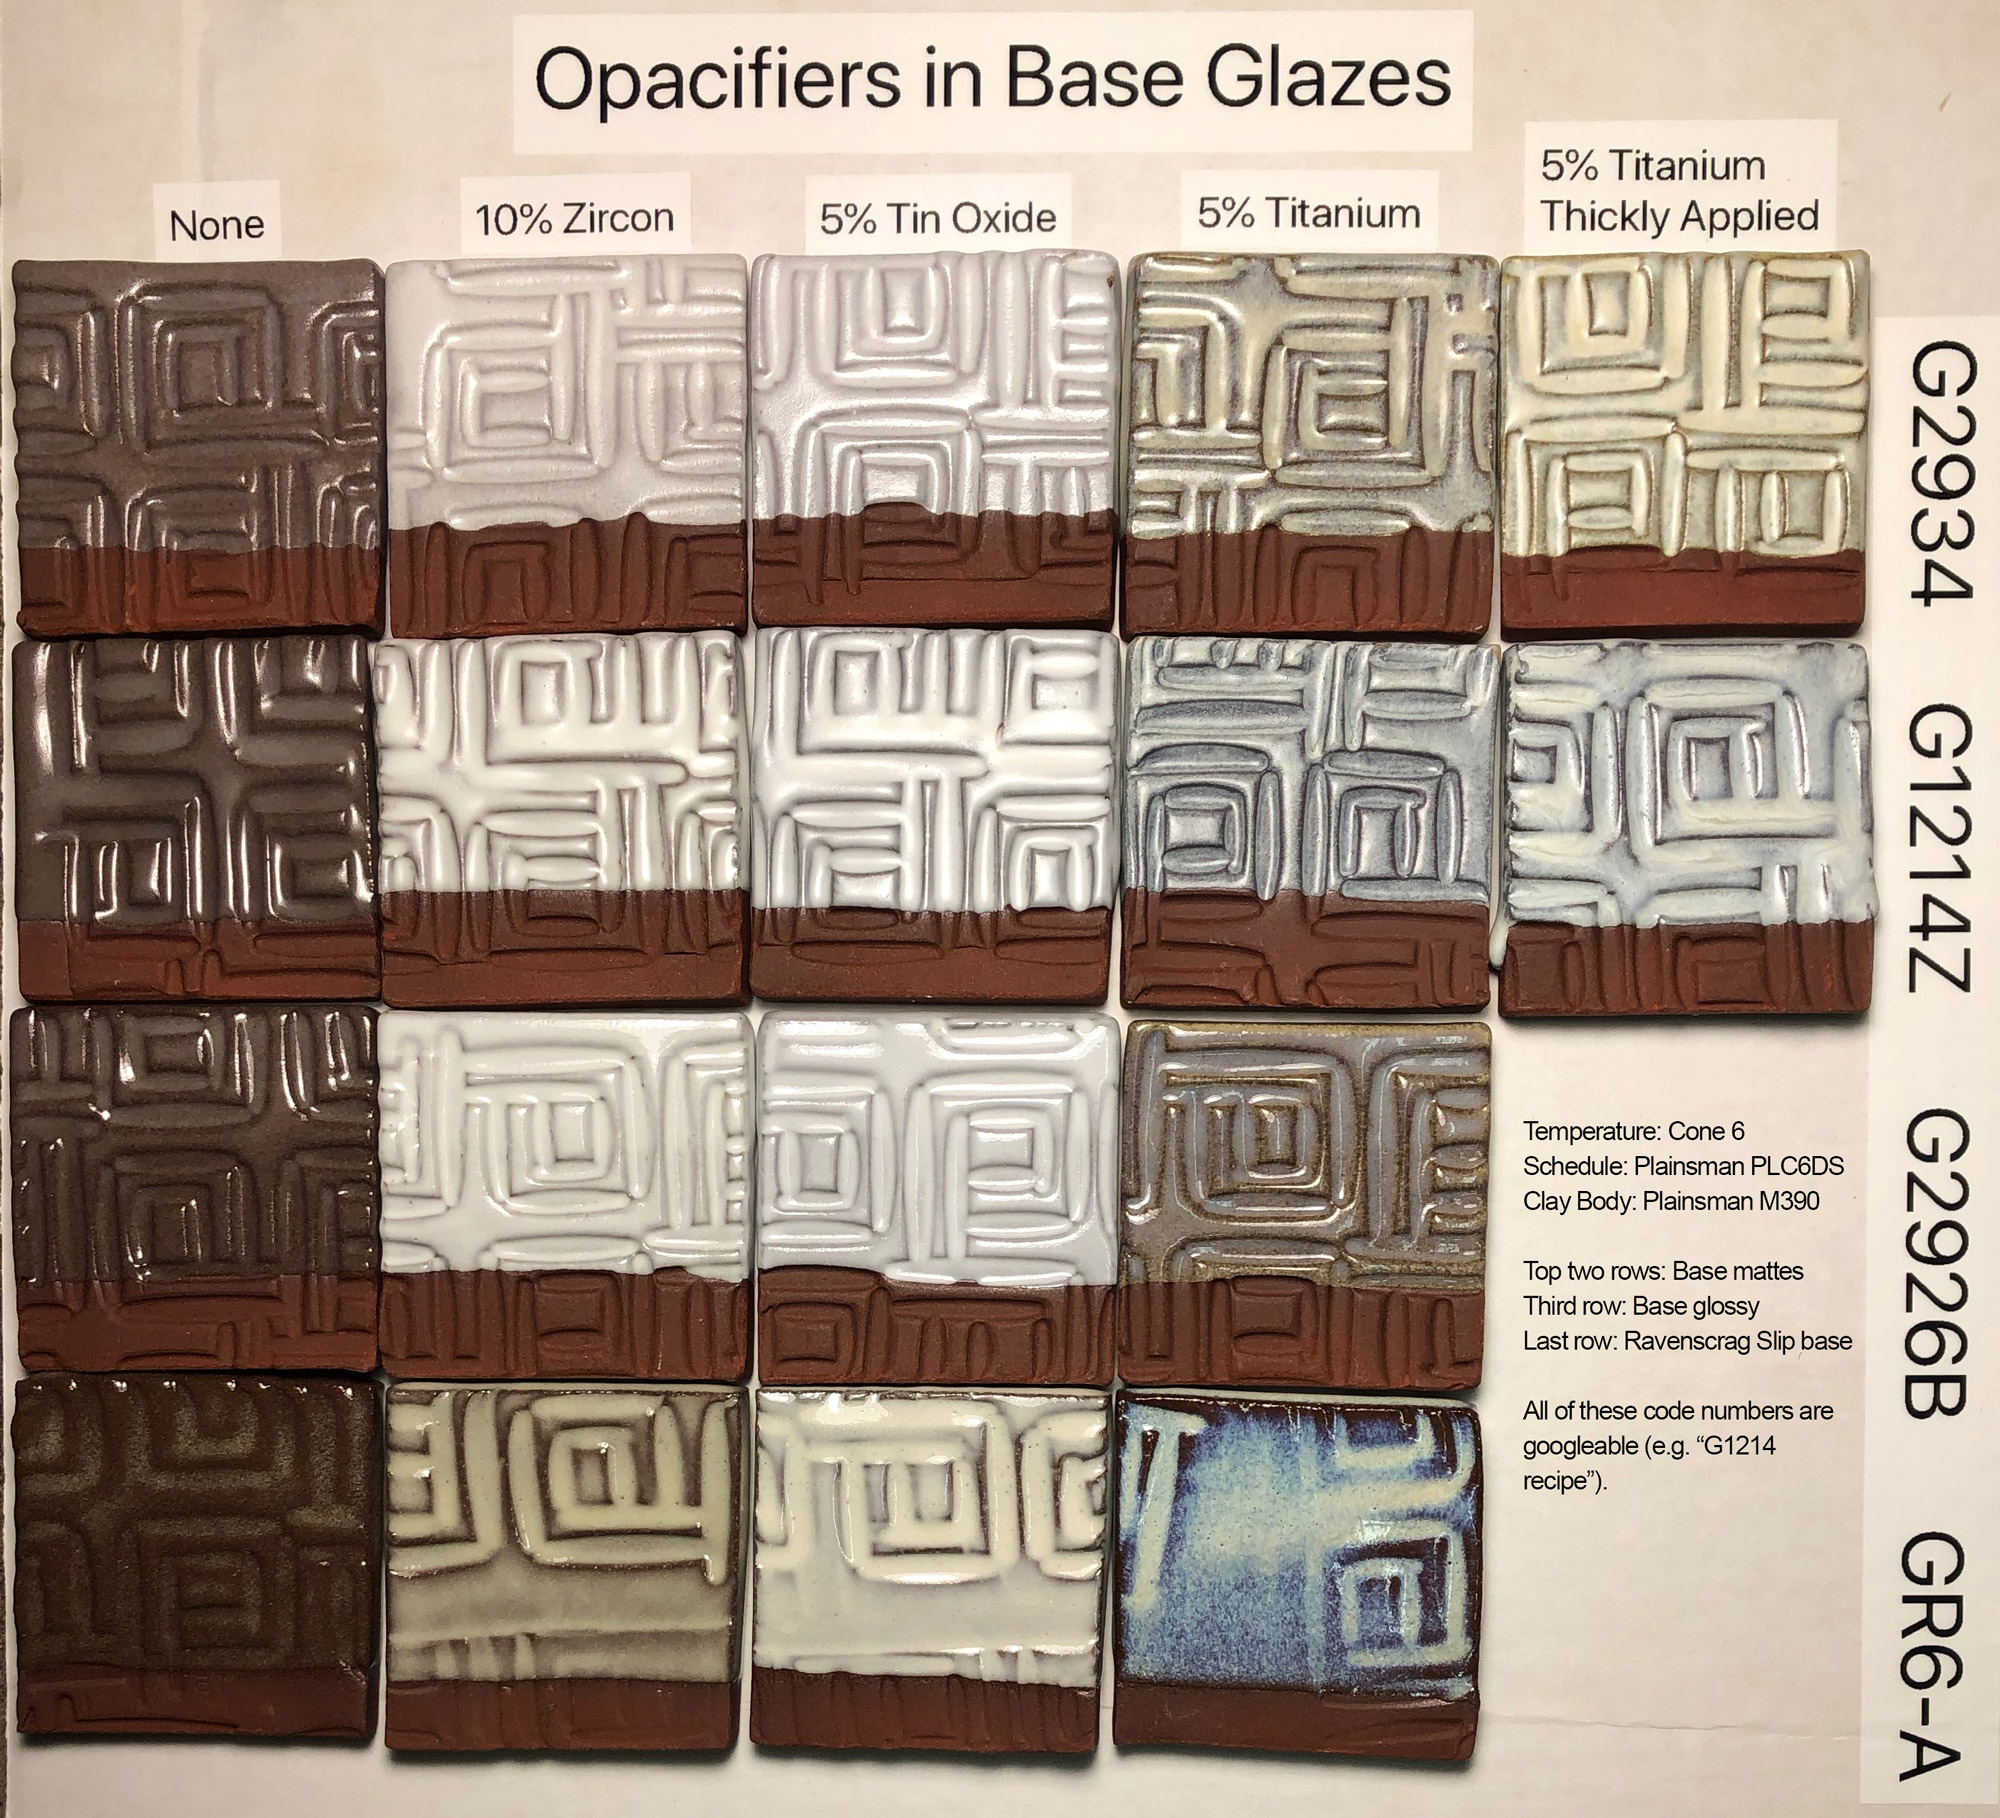 A grid of fired glaze test samples showing opacifiers perform in four glazes